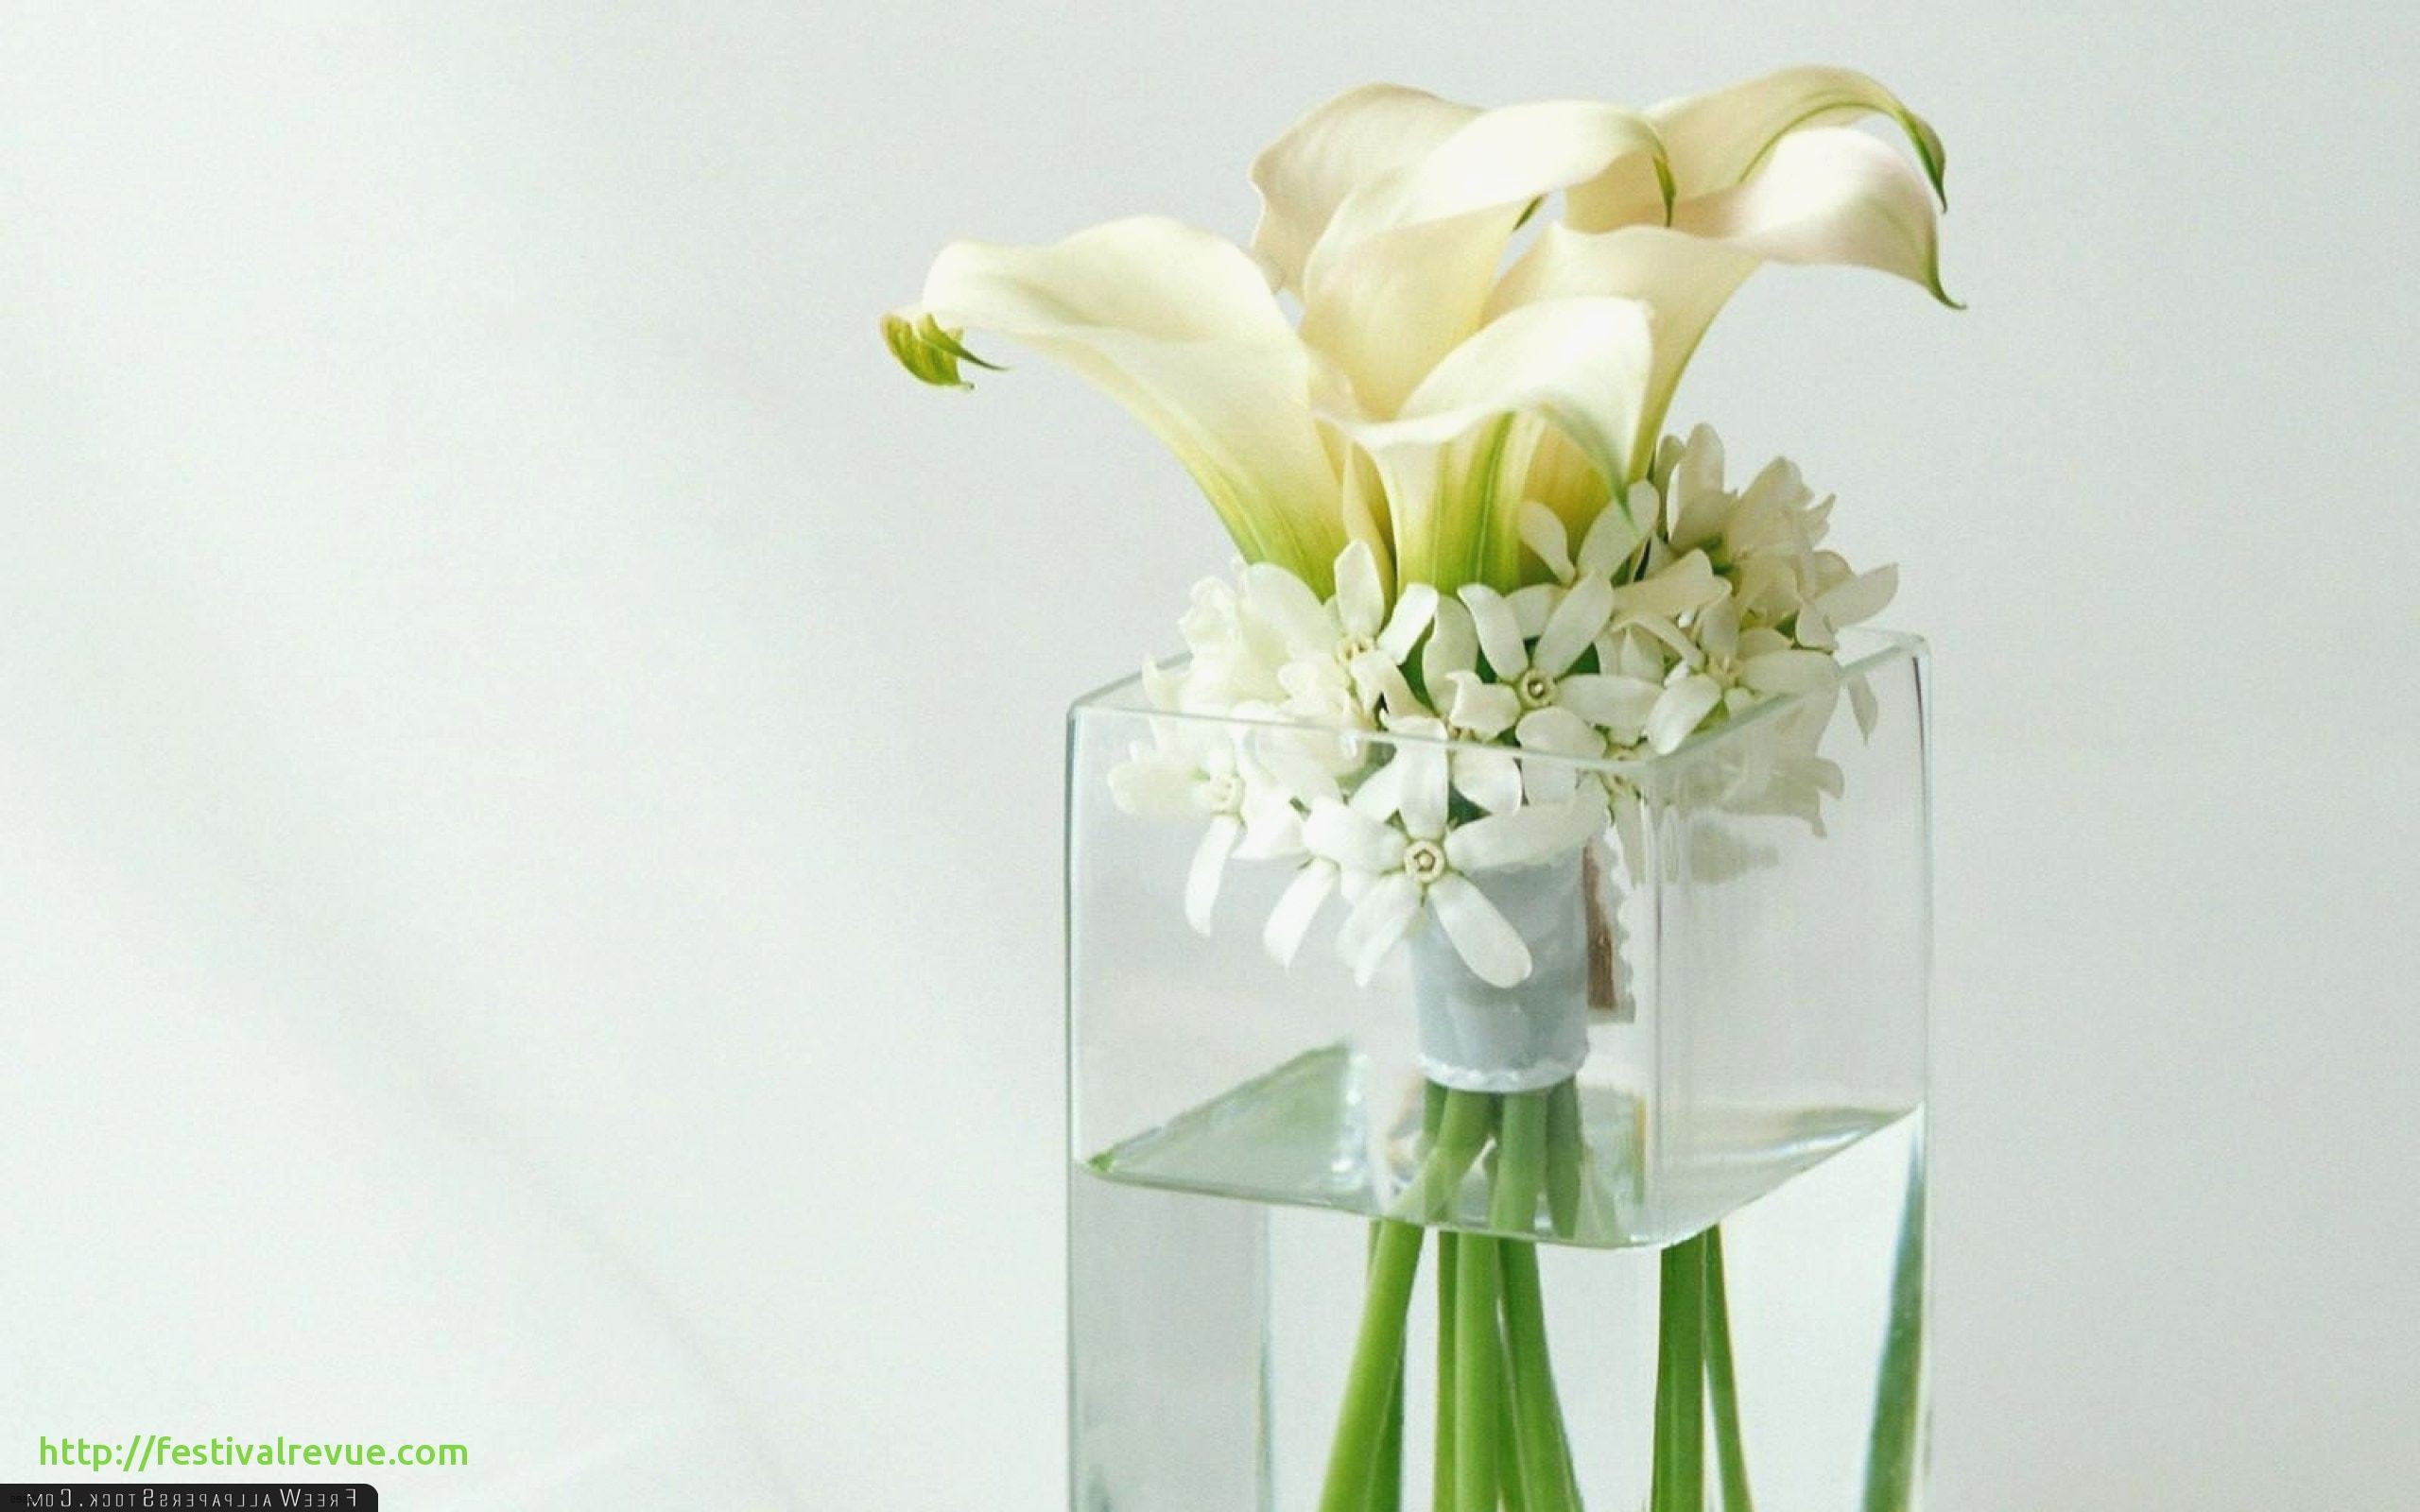 silk flowers in vase of luxury fake flowers flowers wallpapers doyanqq me with regard to nature flowers white wallpaper new tall vase centerpiece ideas vases flowers in water 0d artificial